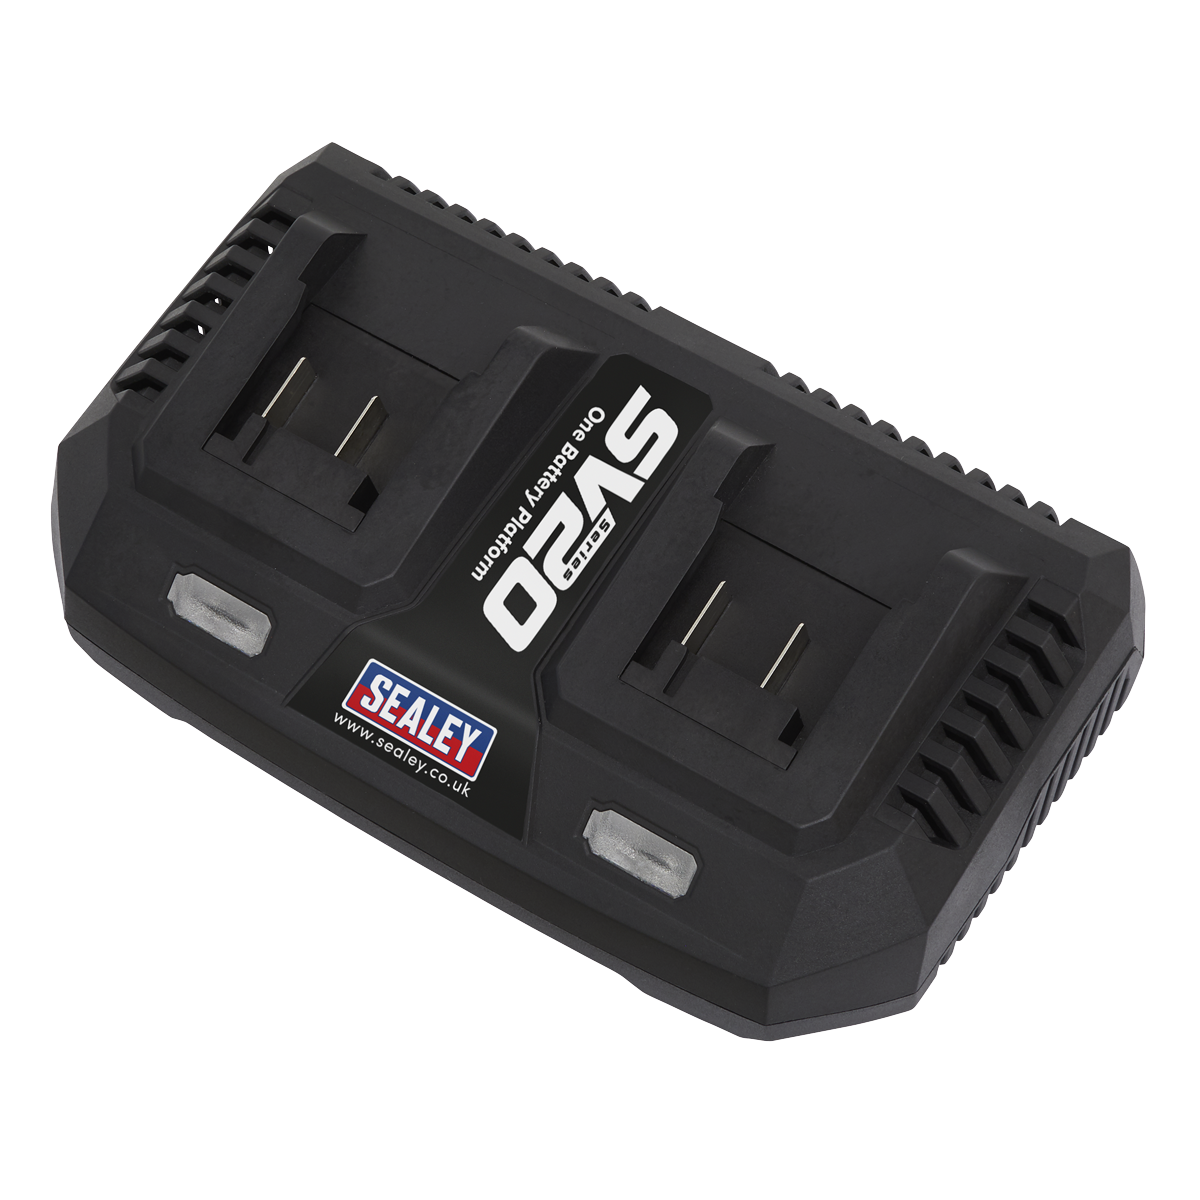 Dual Battery Charger 20V Lithium-ion for SV20 Series